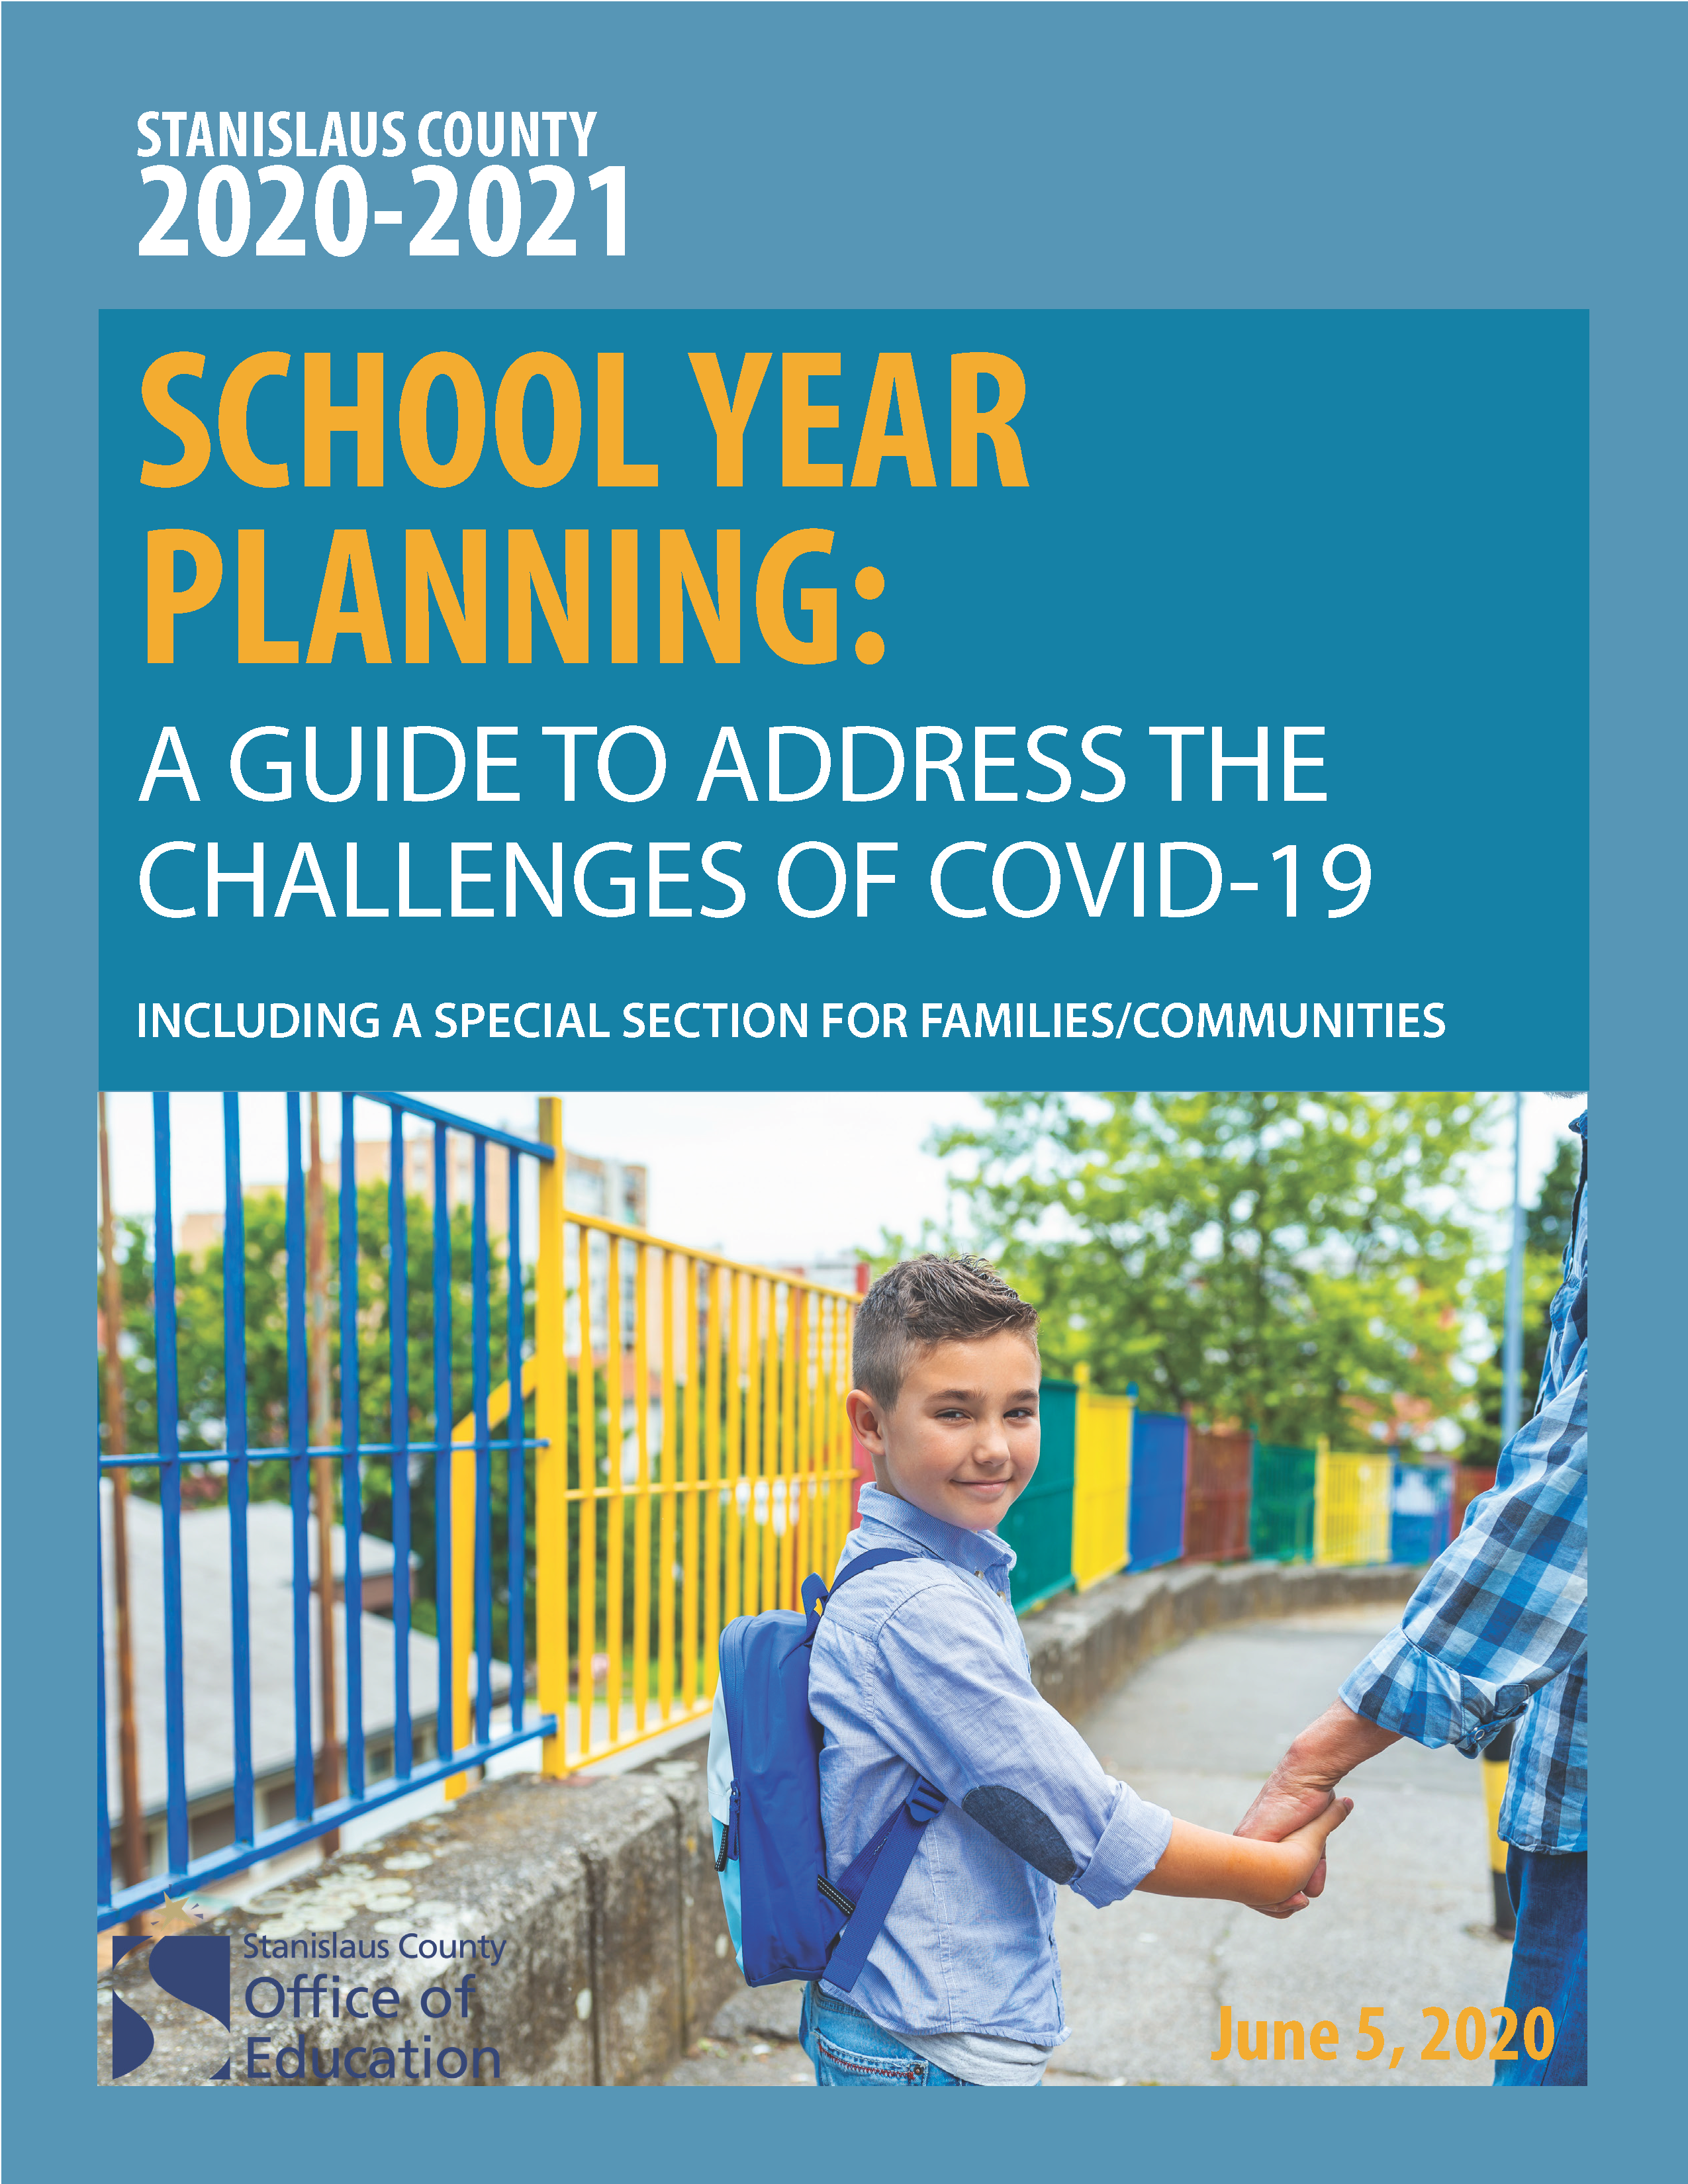 2020-21 School Planning Guide Link to PDF